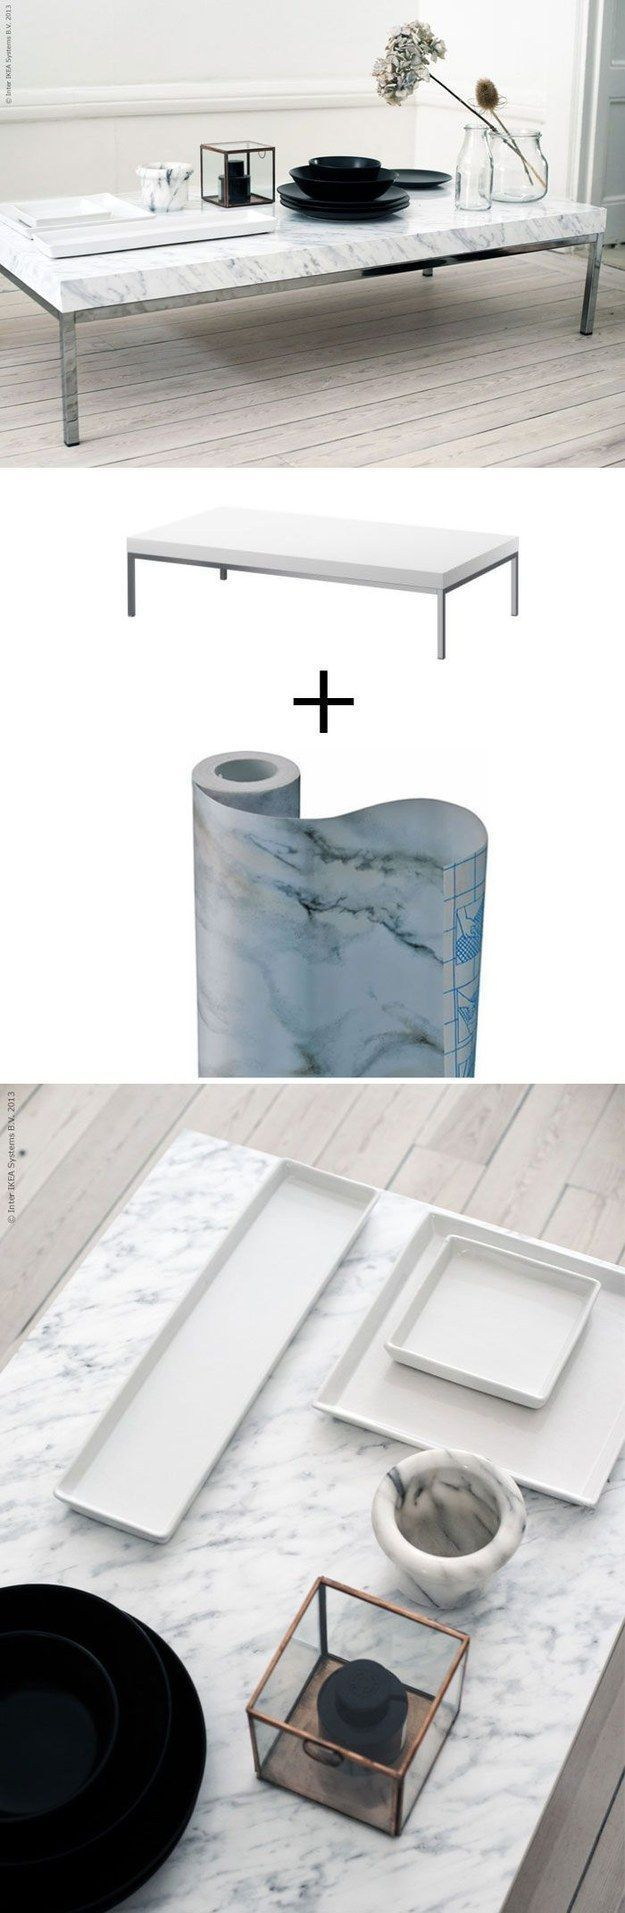 25 genius ikea table hacks - Cover The Klubbo Coffee Table 49 99 With Marble Contact Paper